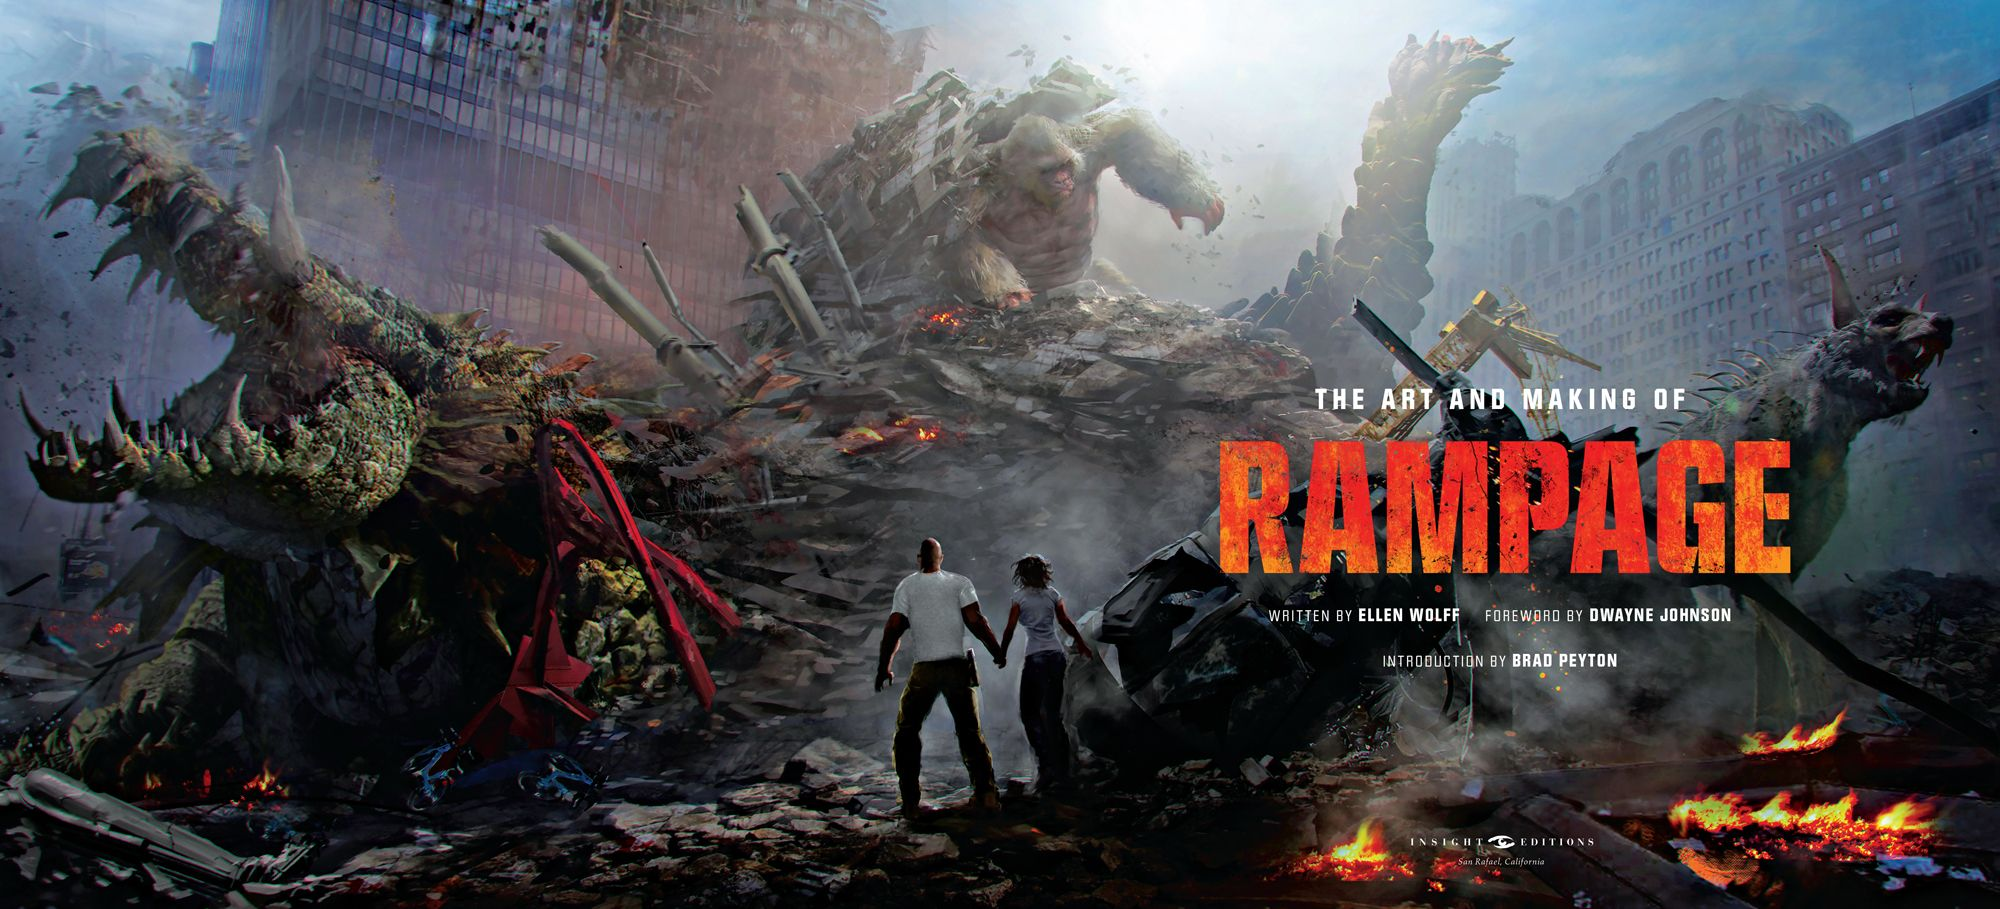 Rampage Movie Hd Wallpapers Download 1080p: The Art And Making Of Rampage Reveals Behind-the-Scenes